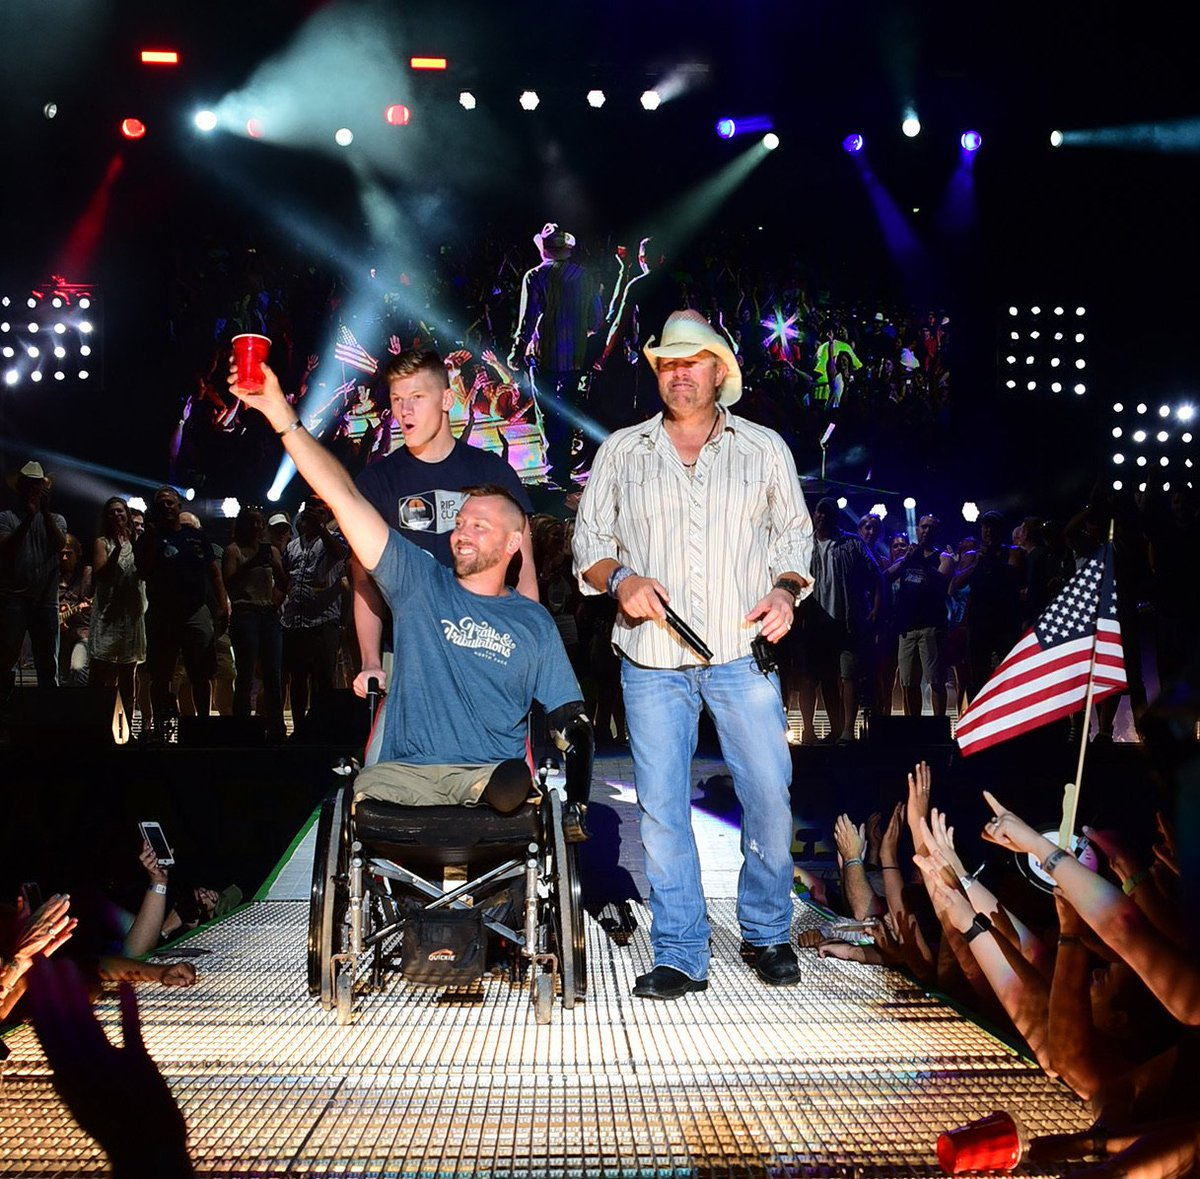 A red solo salute to all of our United States Military, especially our wounded soldiers, like Combat Engineer Adam Keys, who overcame unimaginable odds. God bless our men and women in uniform and God bless the USA! <br>http://pic.twitter.com/HNKpps3wZK